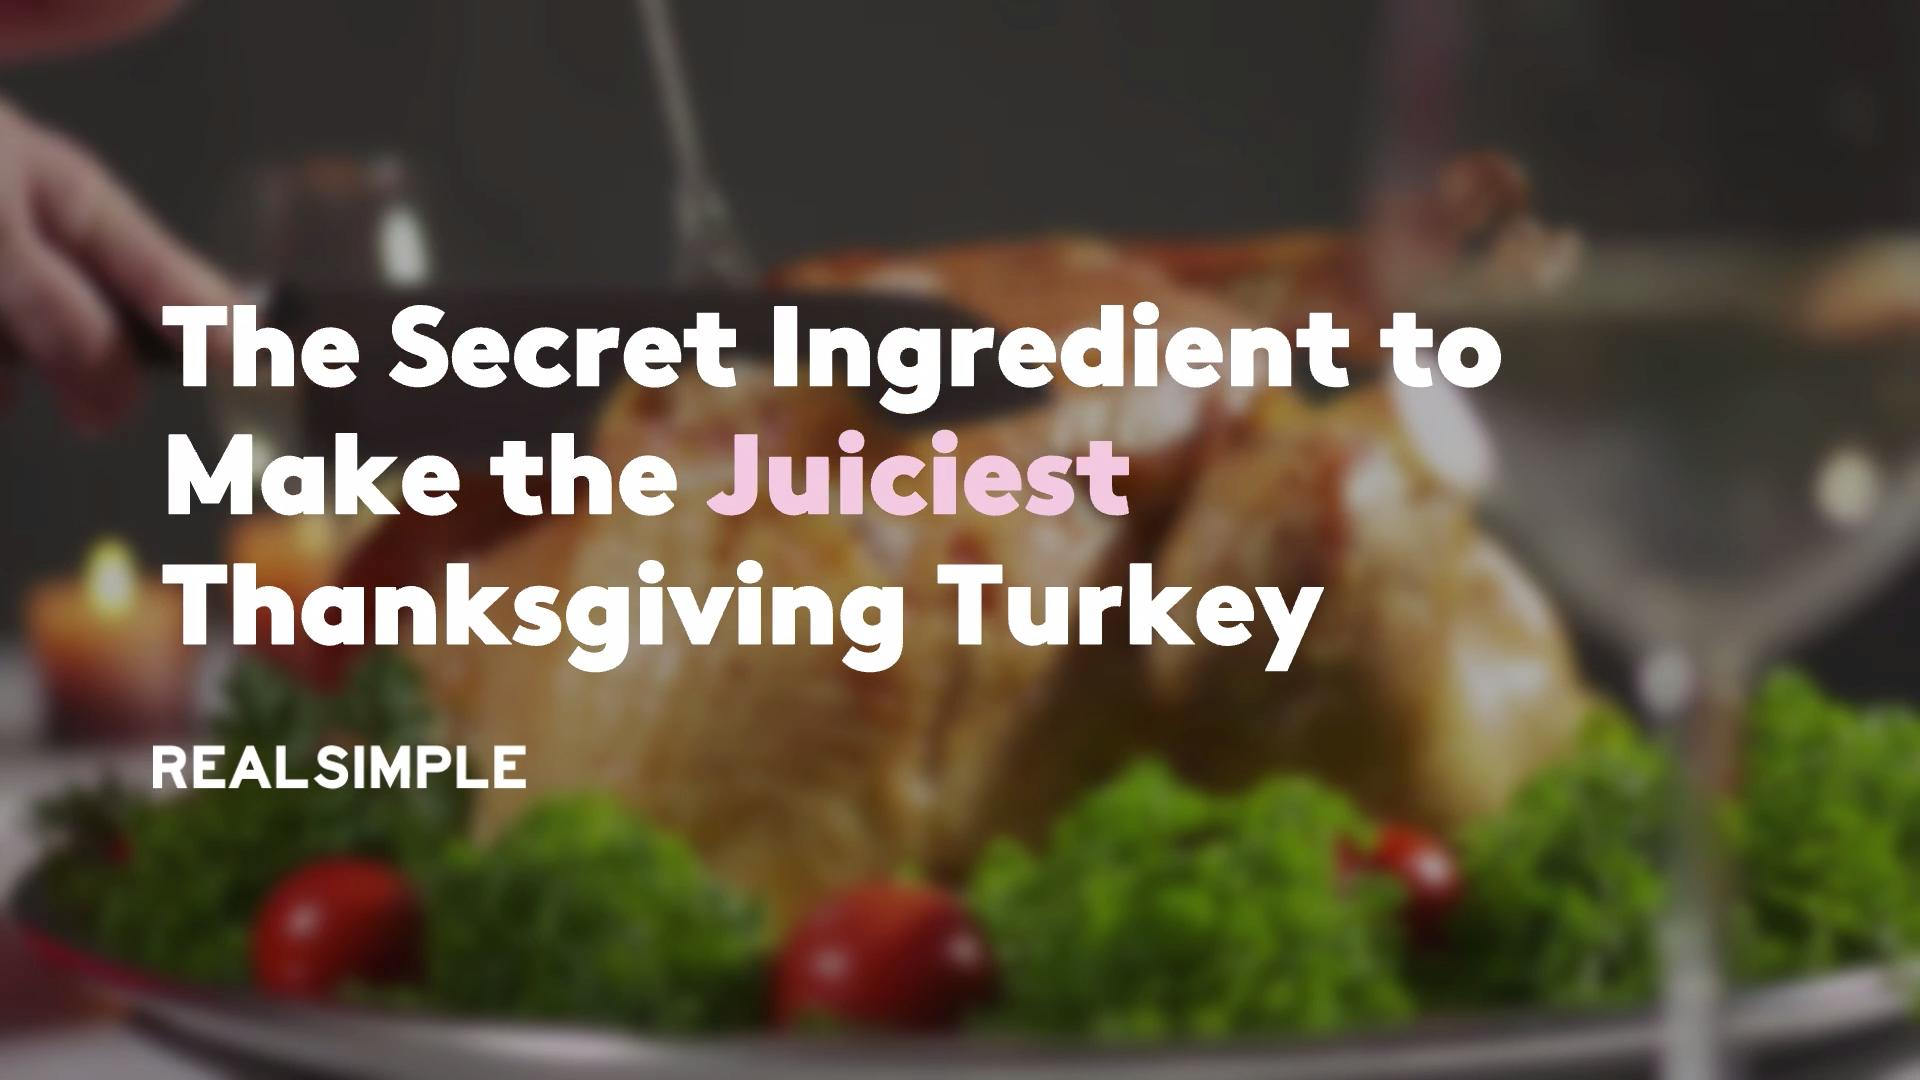 The Secret Ingredient to Make the Juiciest Thanksgiving Turkey